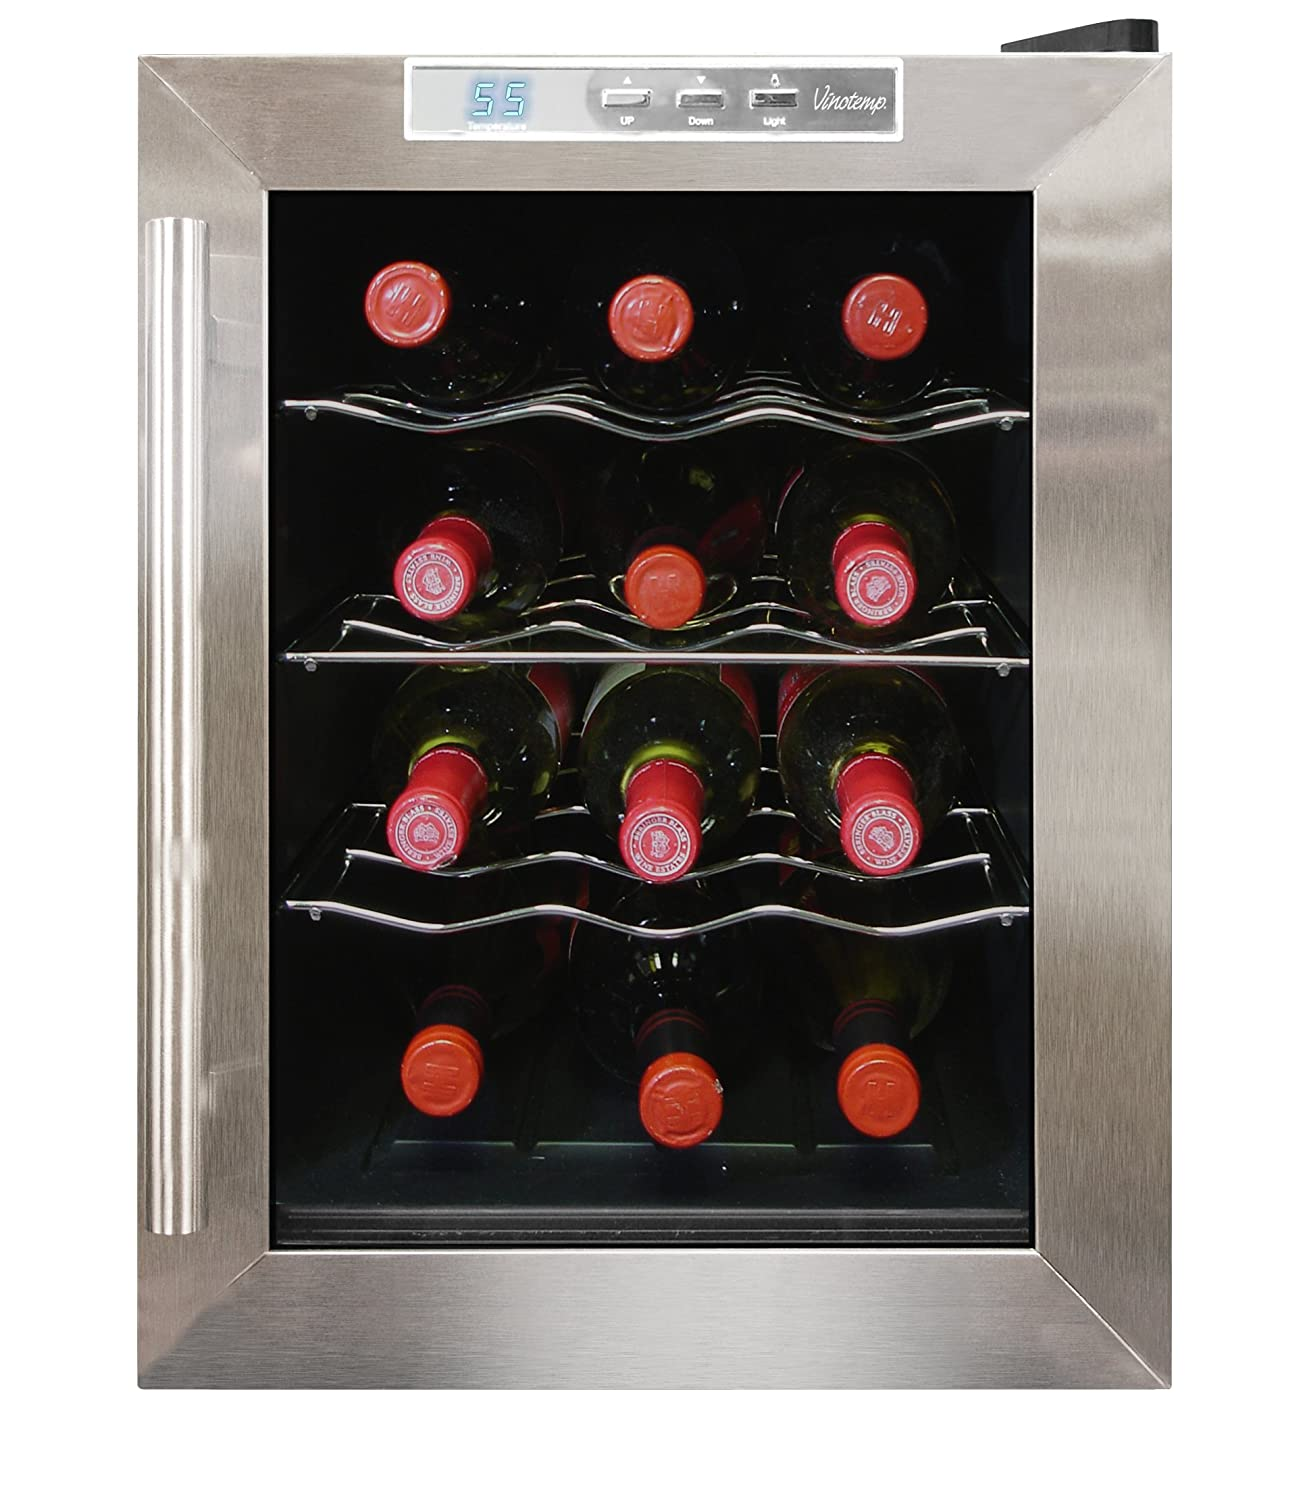 Amazon.com: Vinotemp VT-12TEDS Thermo-Electric Digital 12-Bottle Wine  Chiller, Black and Stainless: Appliances